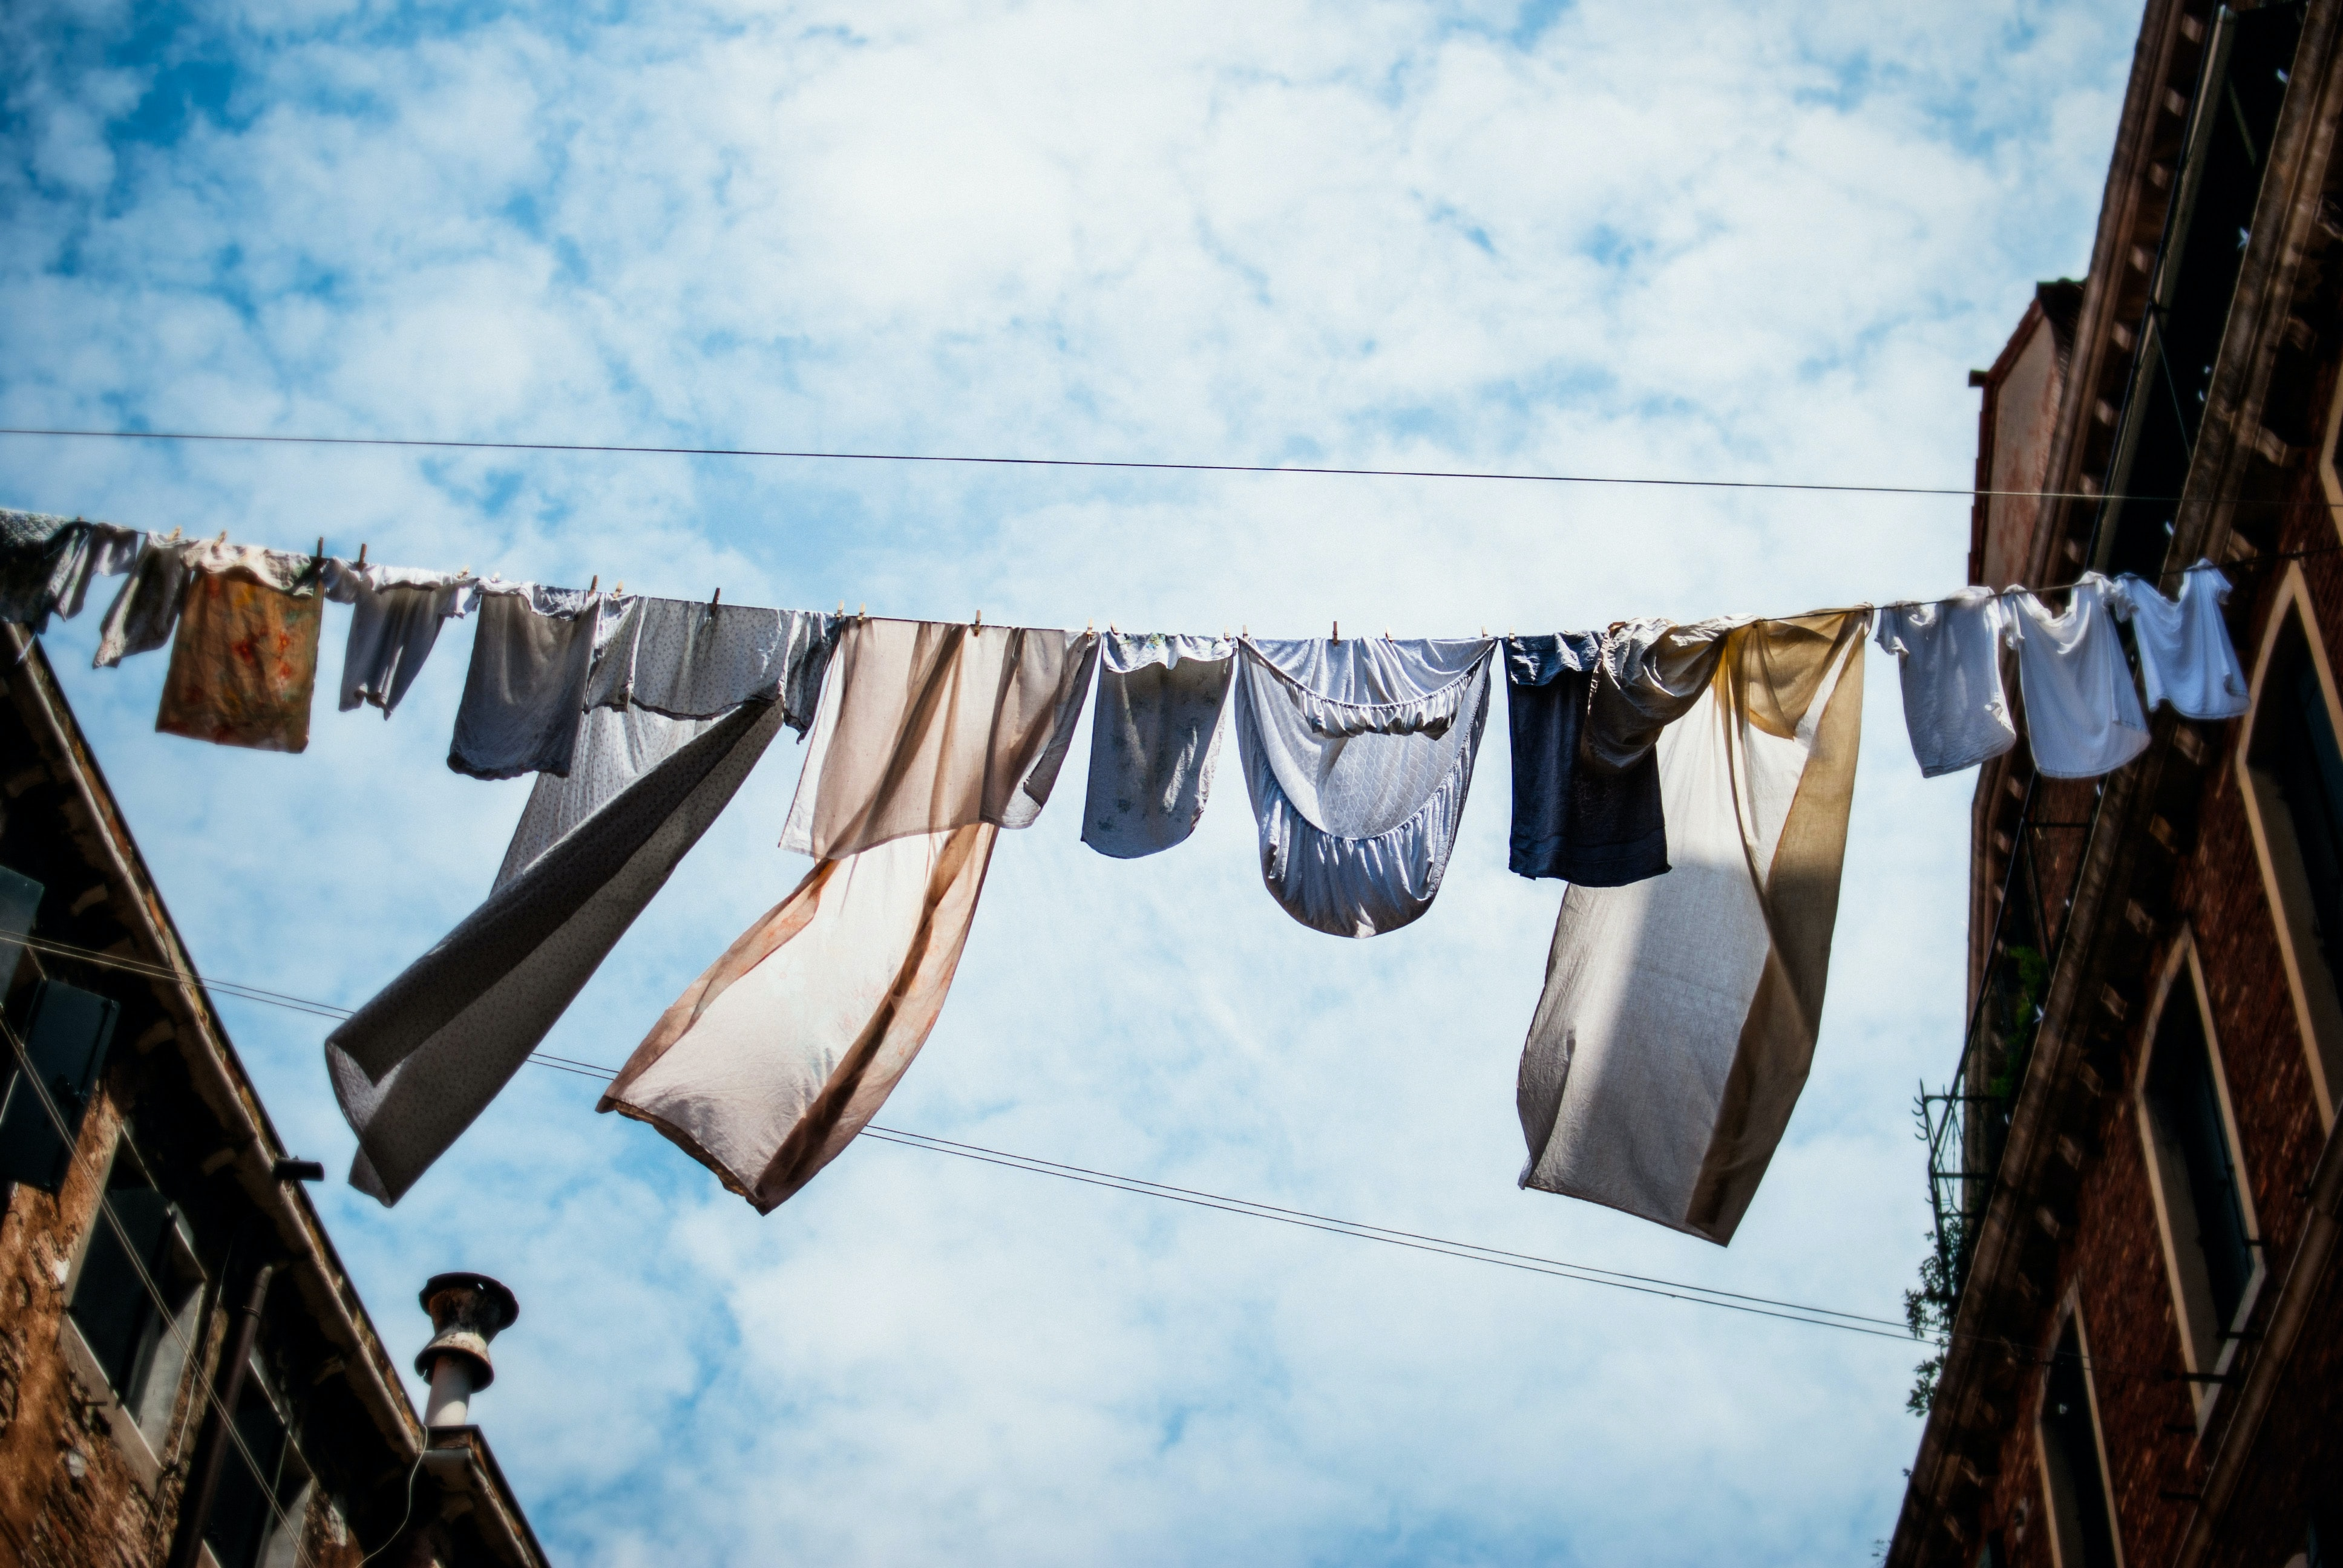 clothes hanged on rope